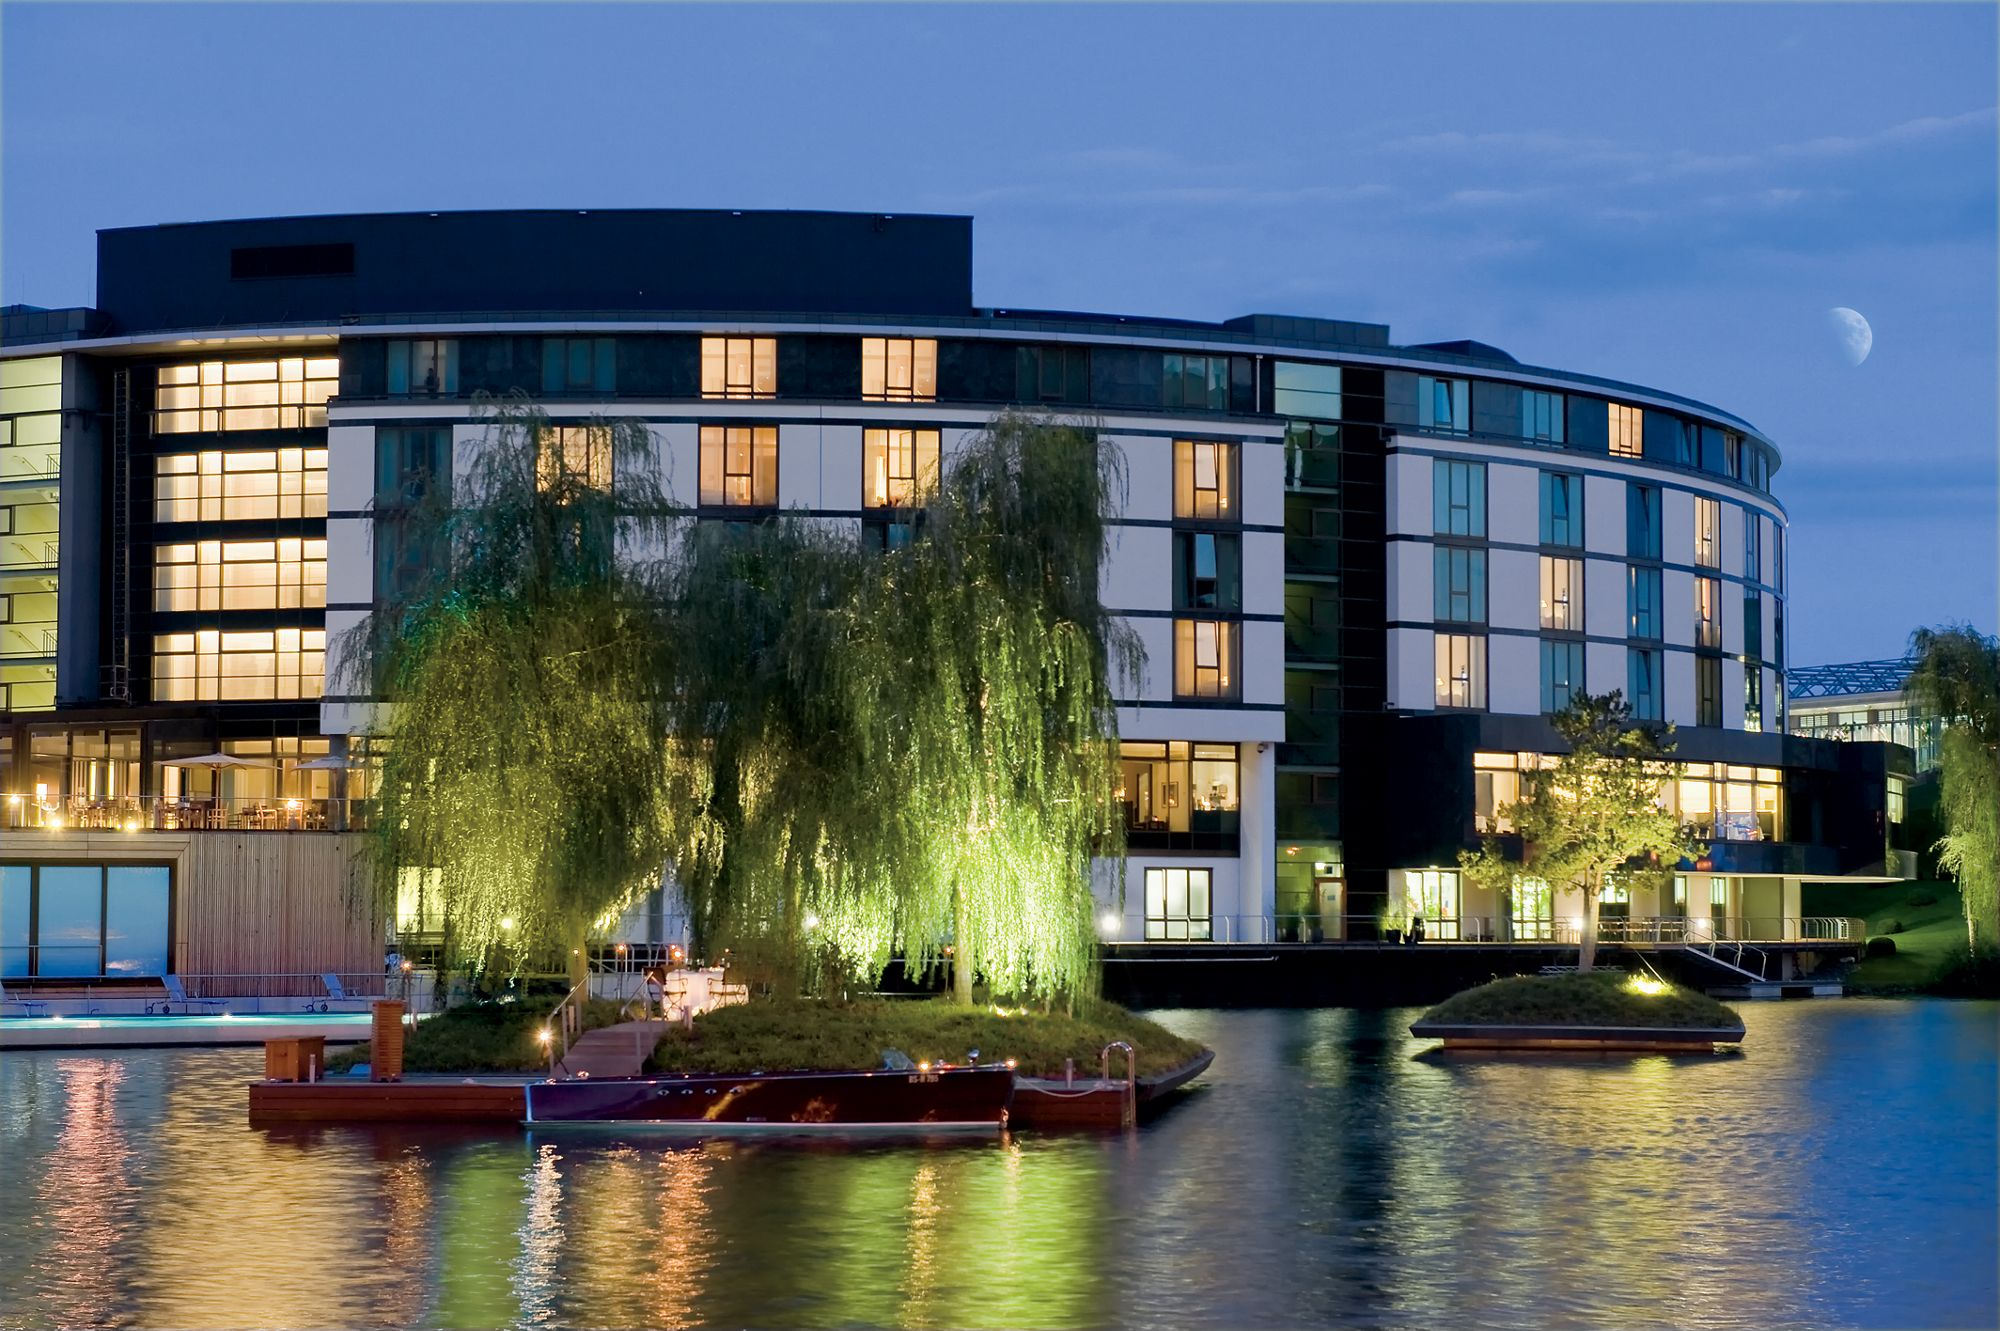 The Ritz-Carlton, Wolfsburg curves away from the lake into the evening sky